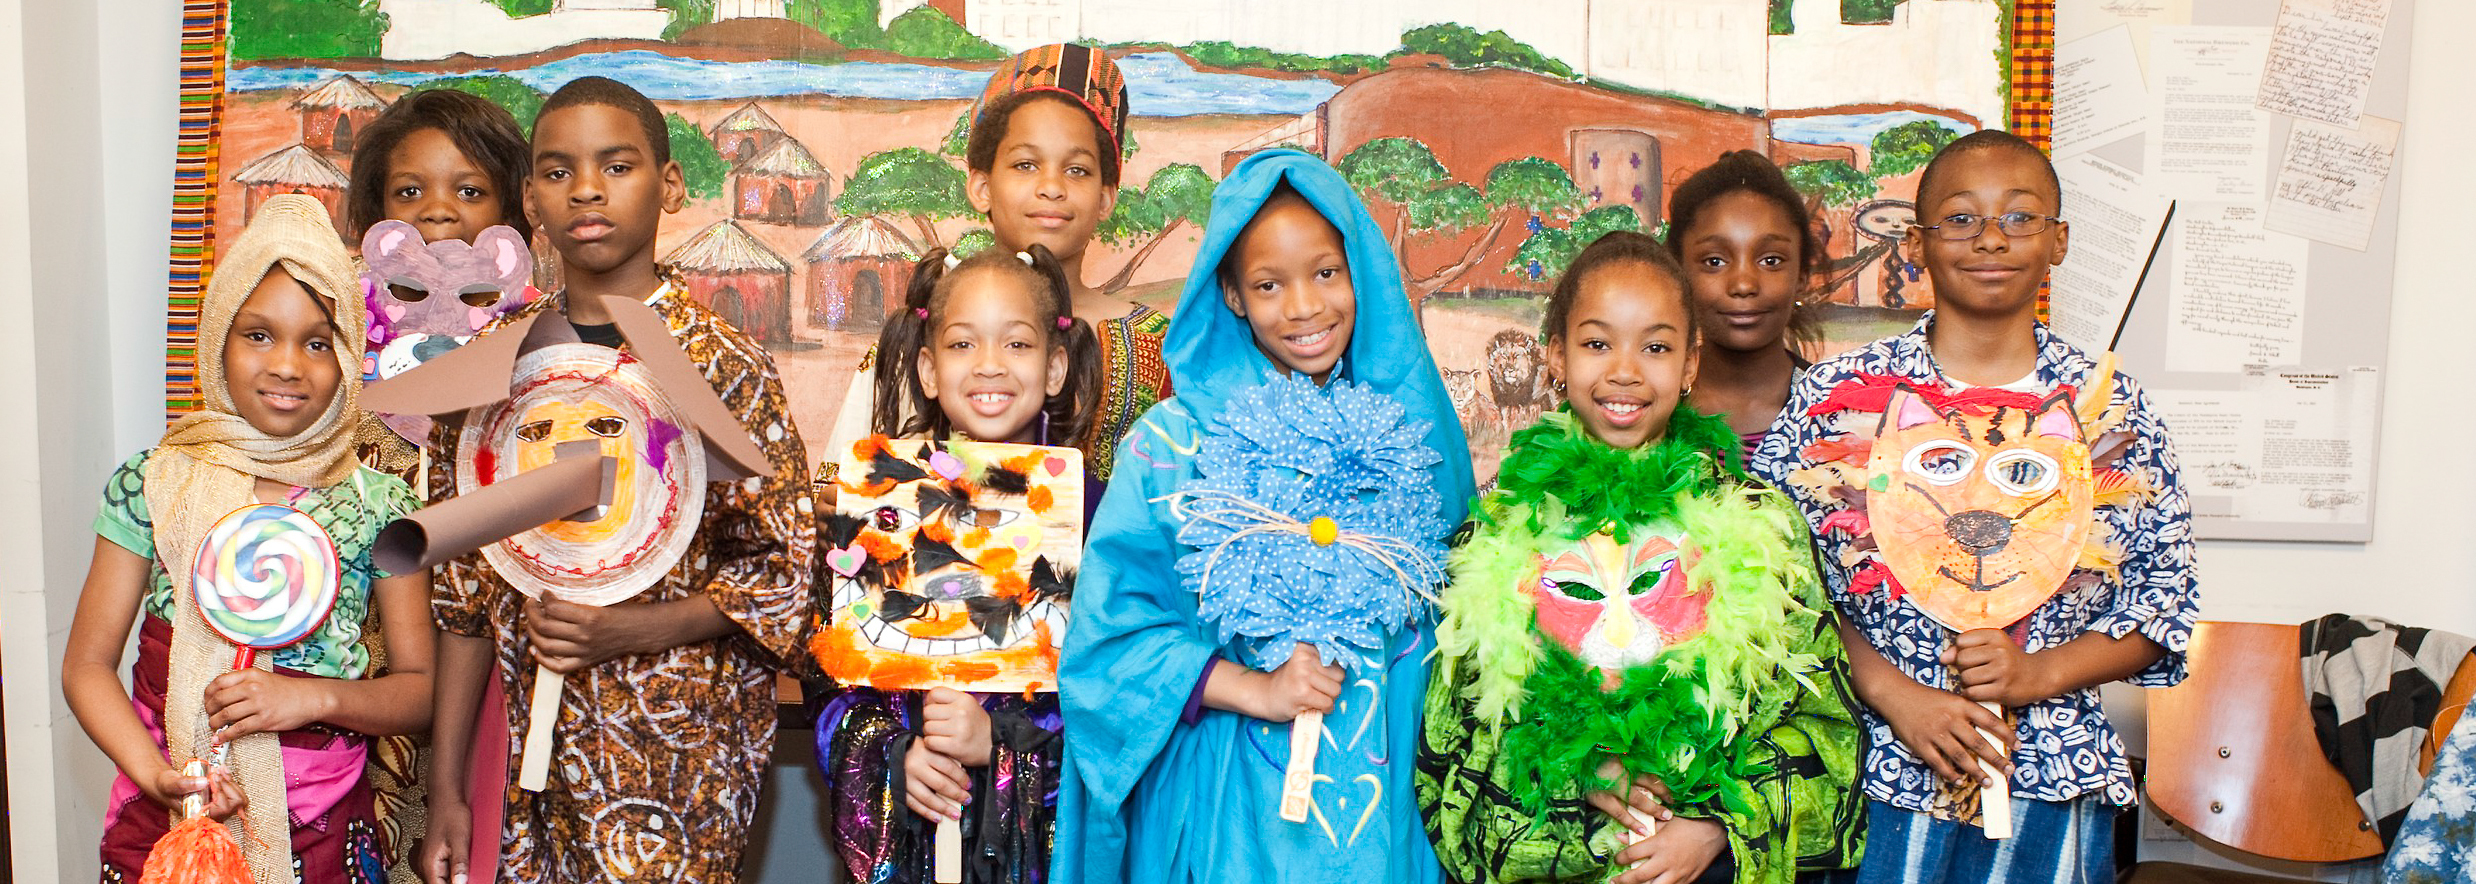 Museum Academy Program students pose for a group photograph.